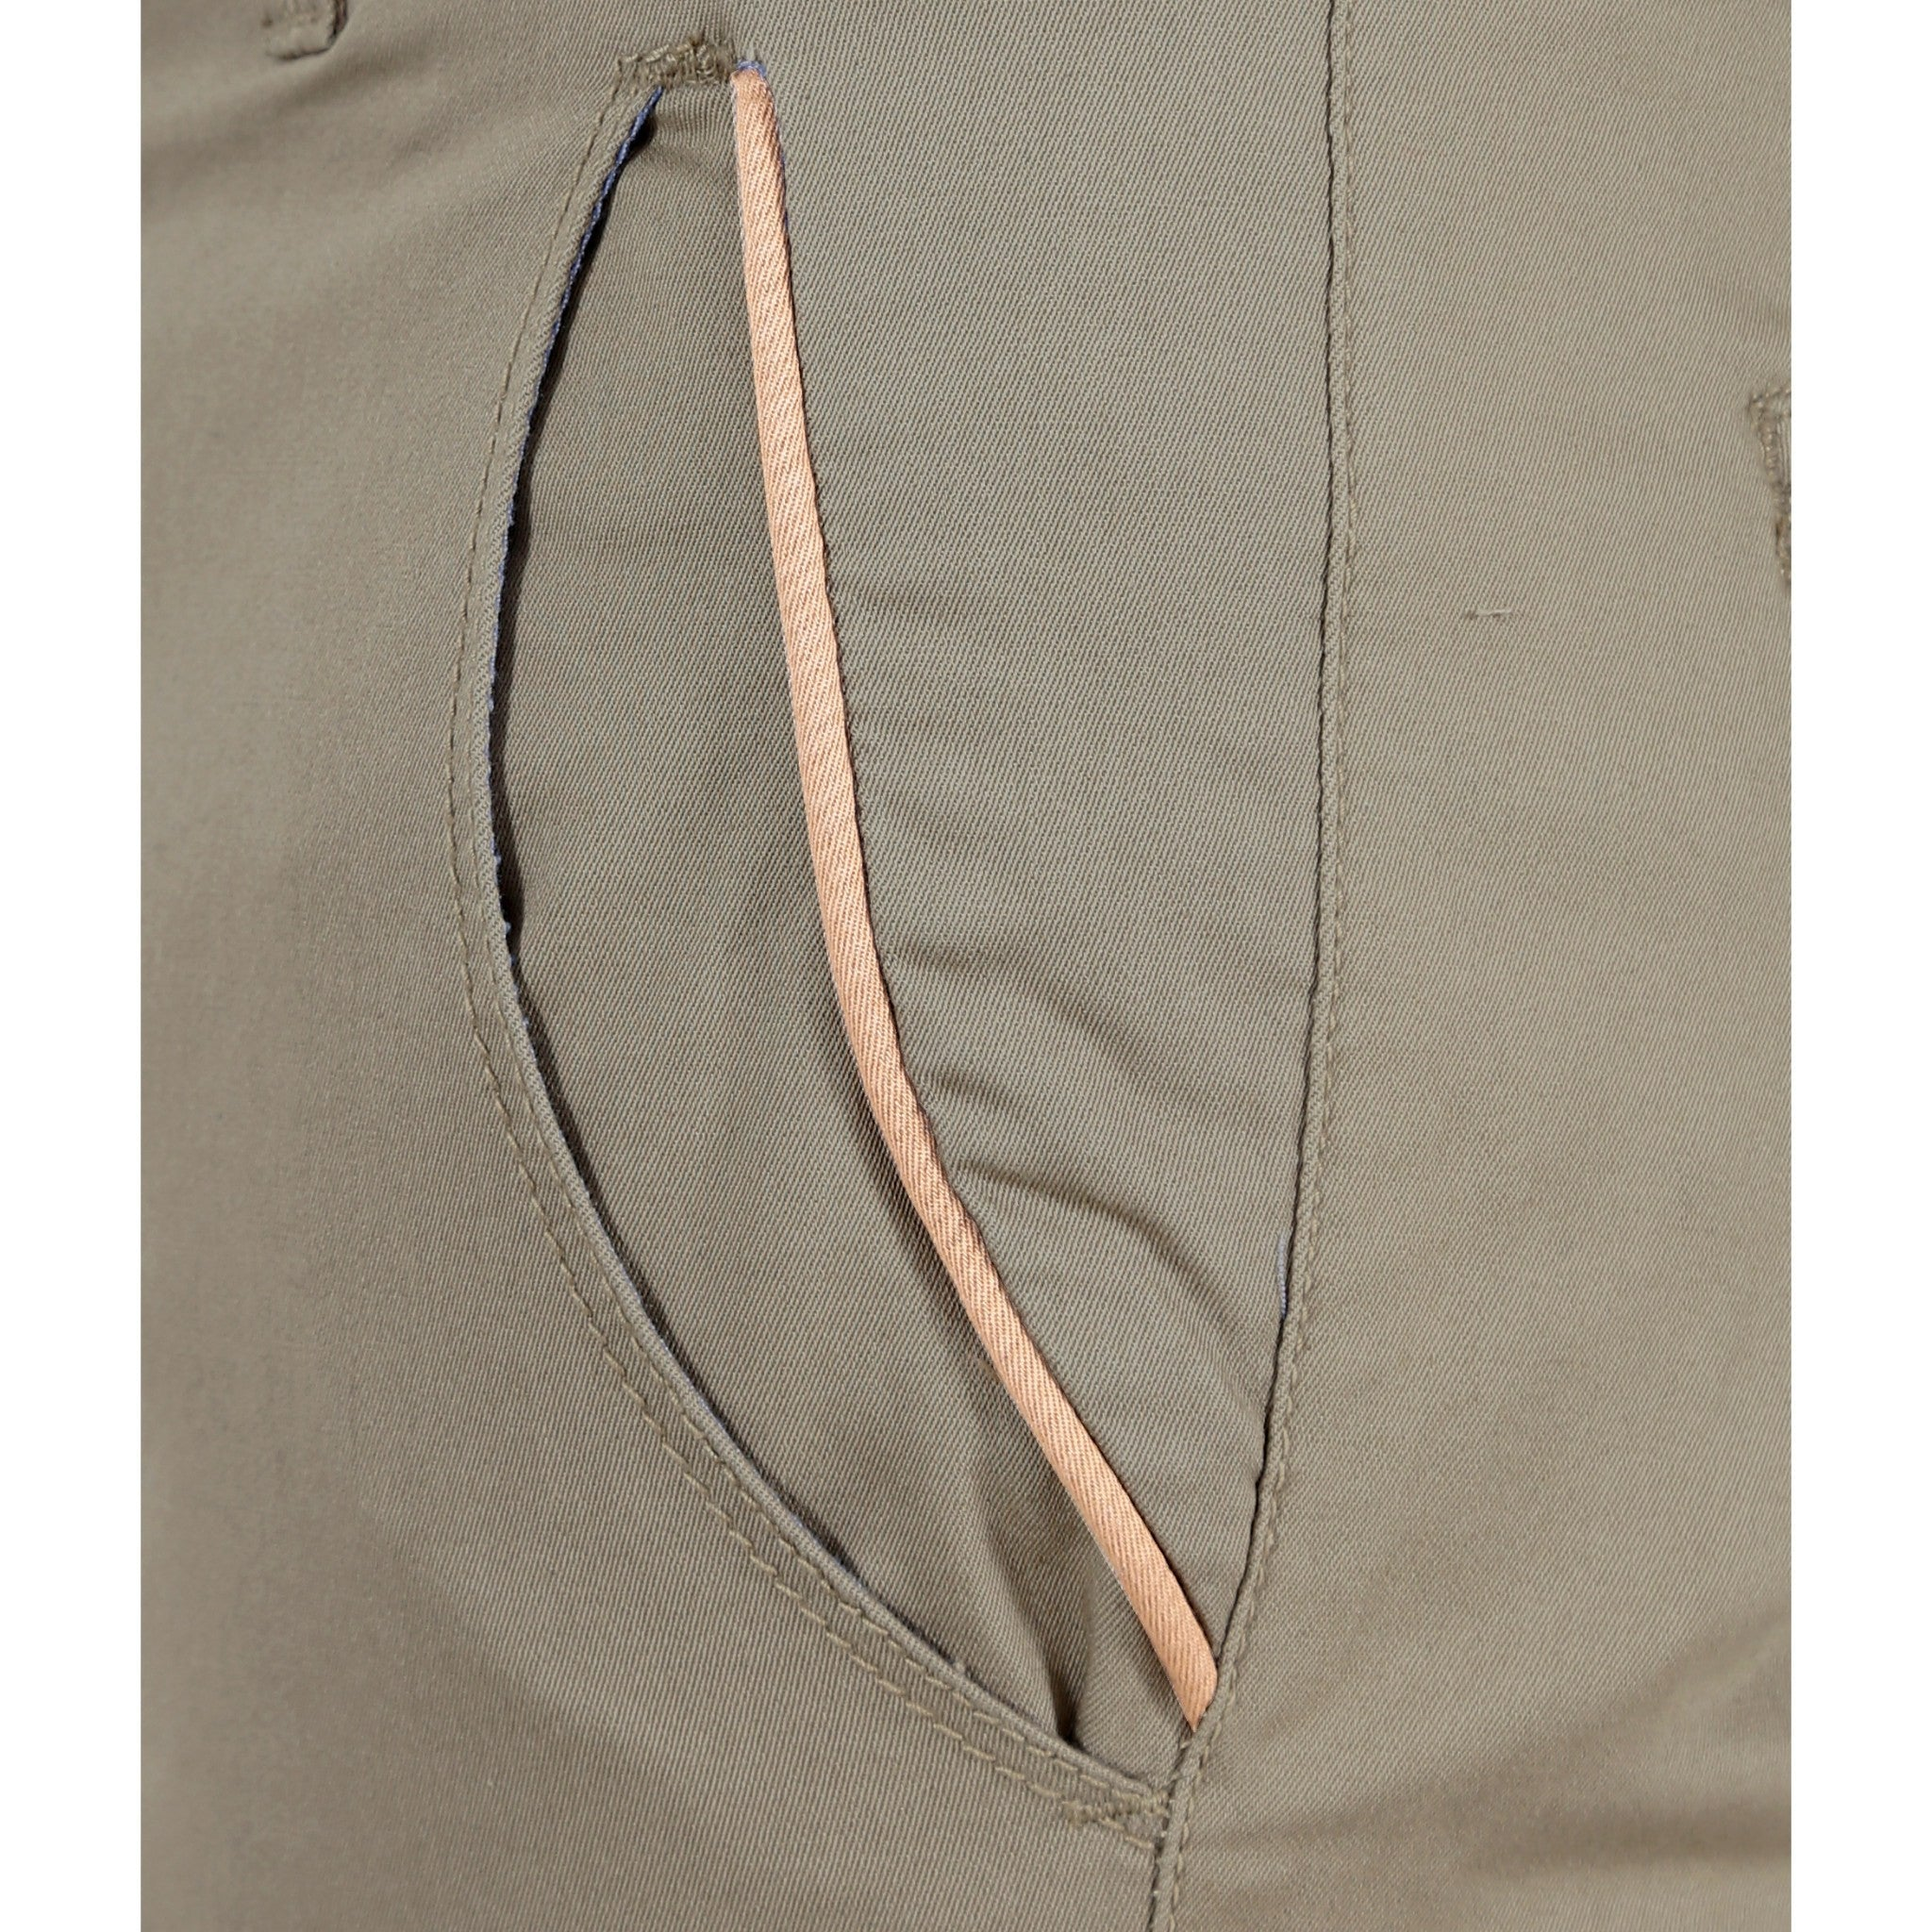 Khaki Gray Cotton Twill Elastene Trouser close up view